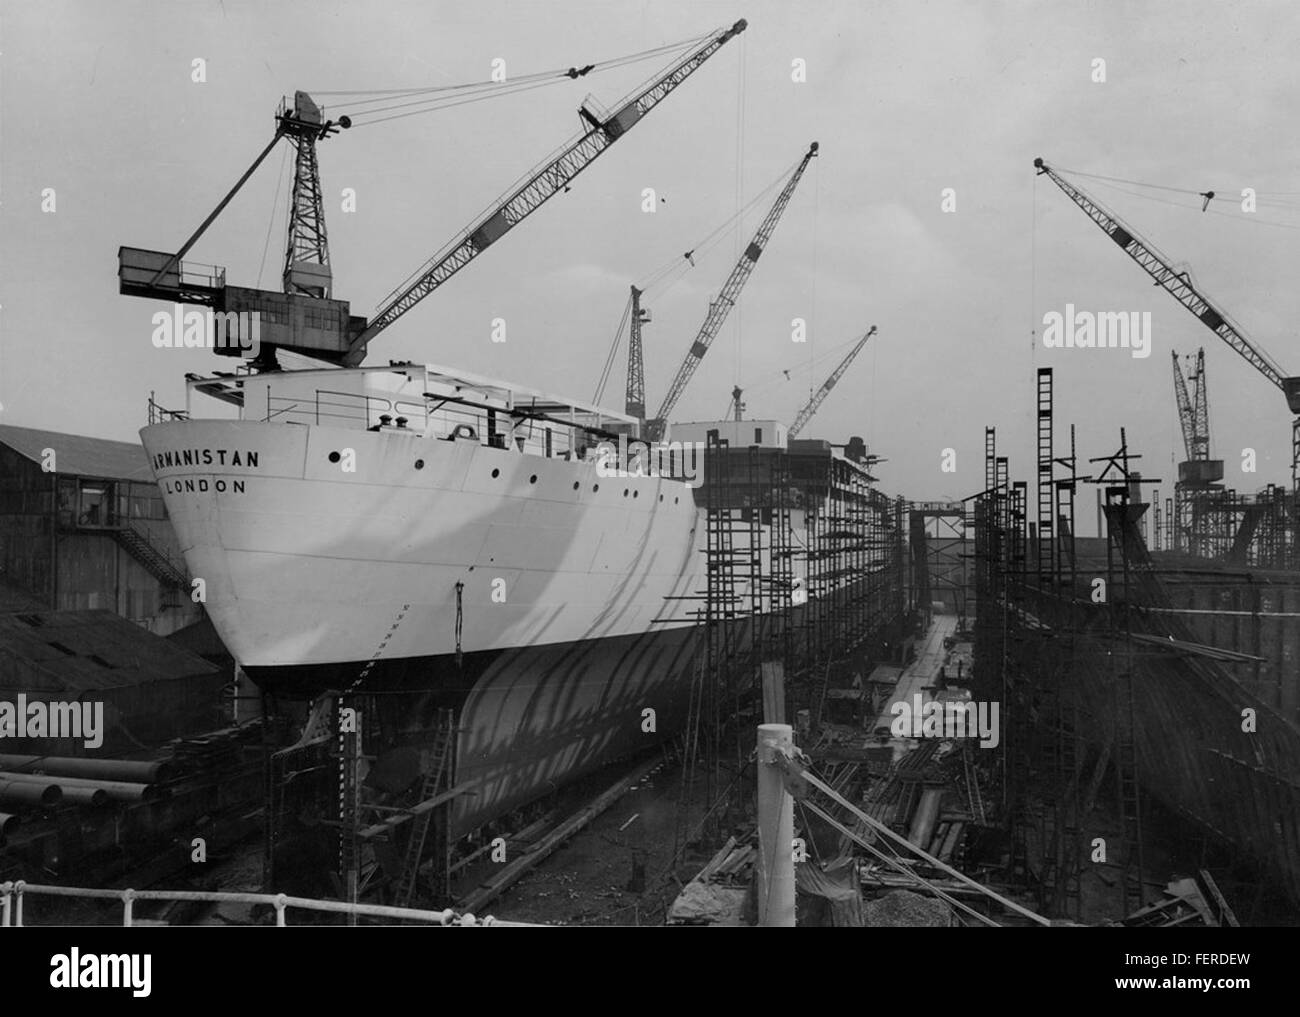 Stern view of the cargo ship 'Armanistan' Stern view of the cargo ship 'Armanistan' - Stock Image